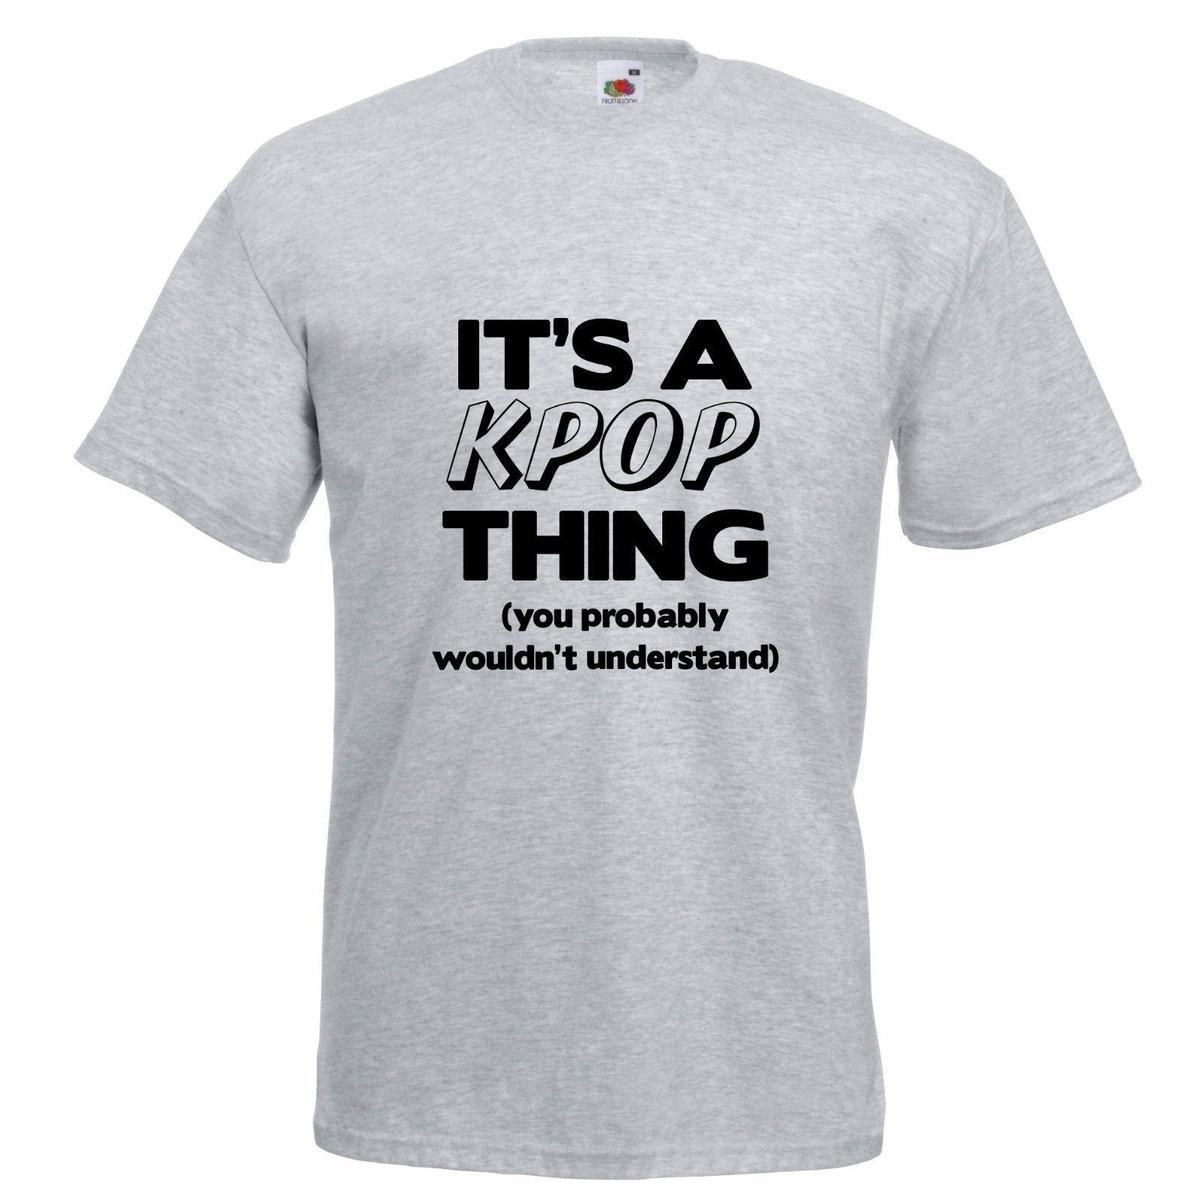 Its A Kpop Thing You Probbaly Wouldnt Understand T Shirt Bts Exo